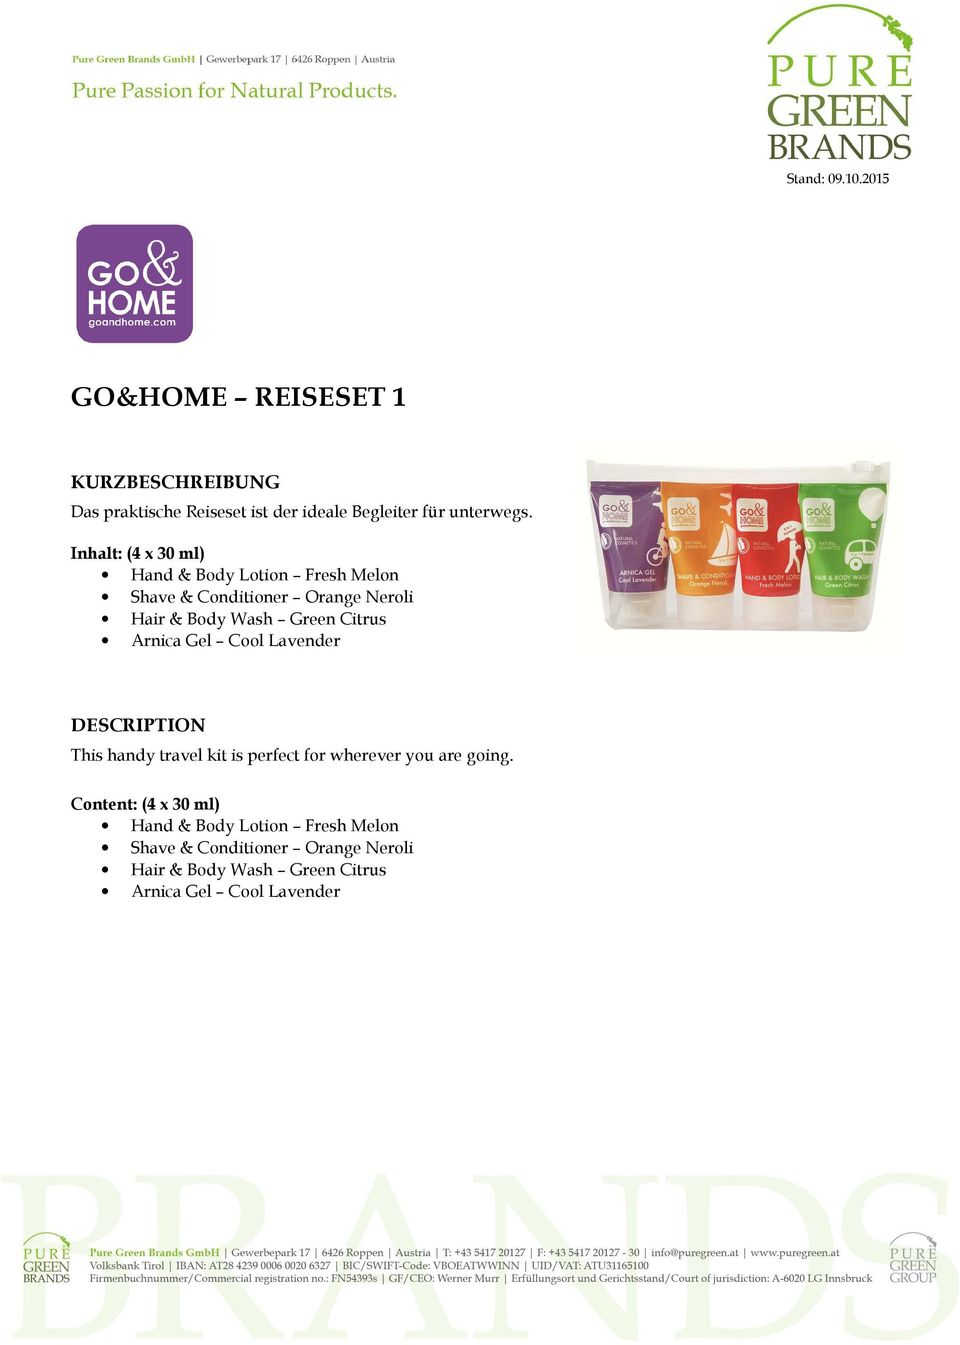 Citrus Arnica Gel Cool Lavender DESCRIPTION This handy travel kit is perfect for wherever you are going.